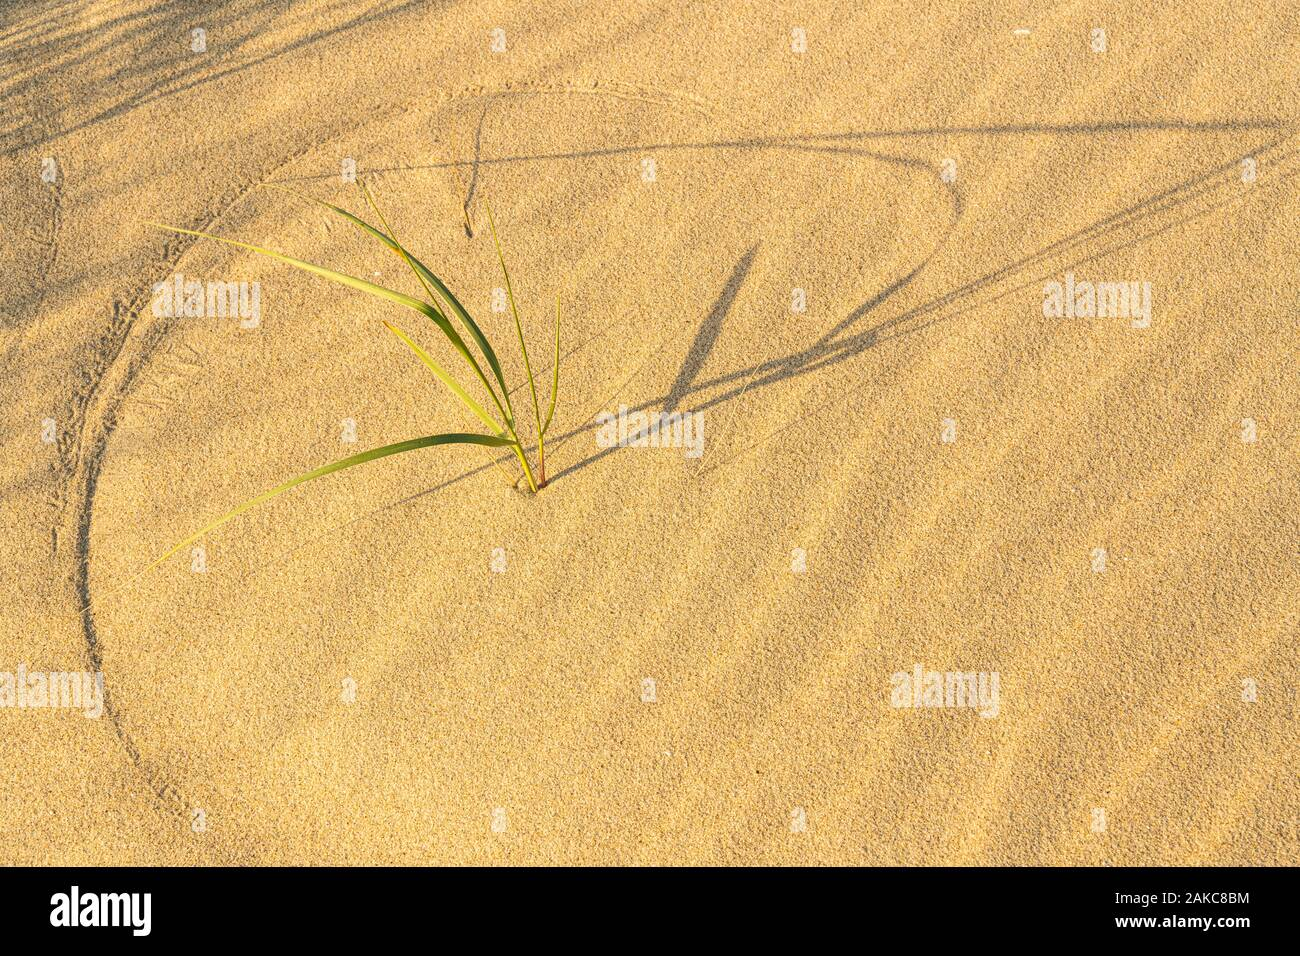 Les Oyats Le Crotoy oyat stock photos & oyat stock images - alamy